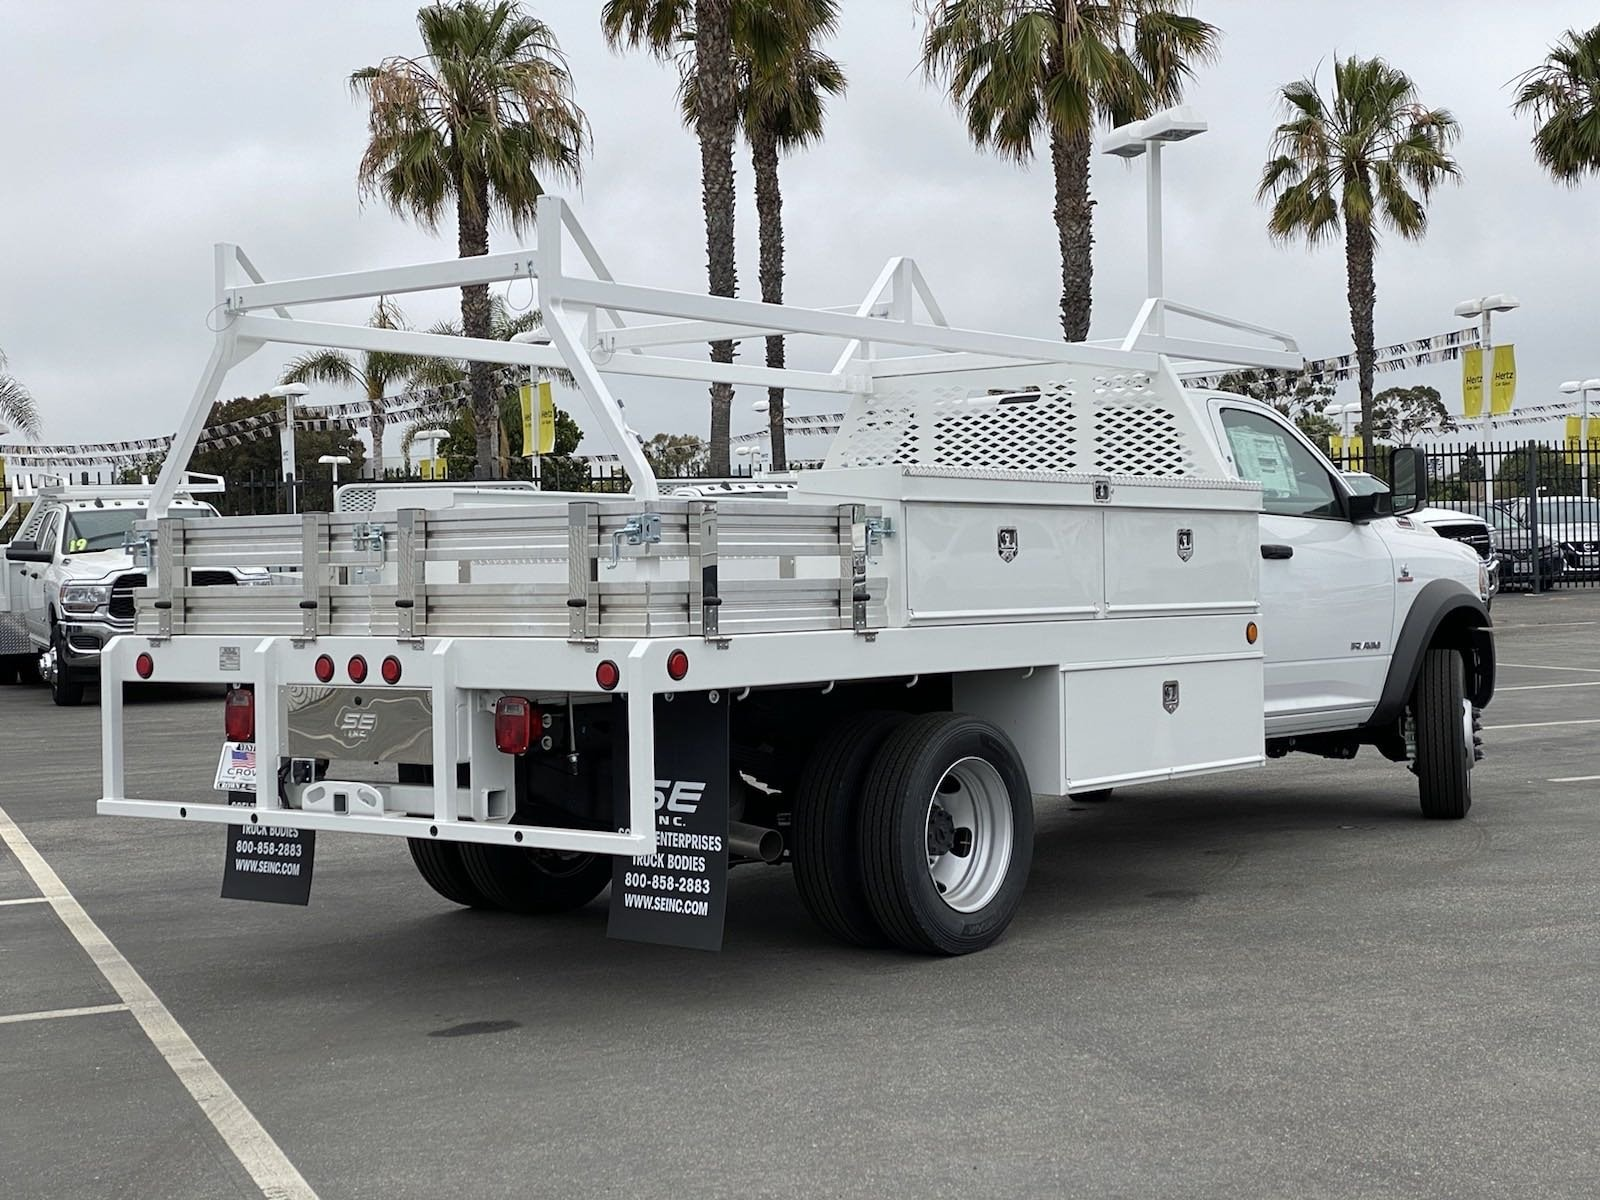 2020 Ram 5500 Regular Cab DRW 4x2, Scelzi Contractor Body #H1851 - photo 1